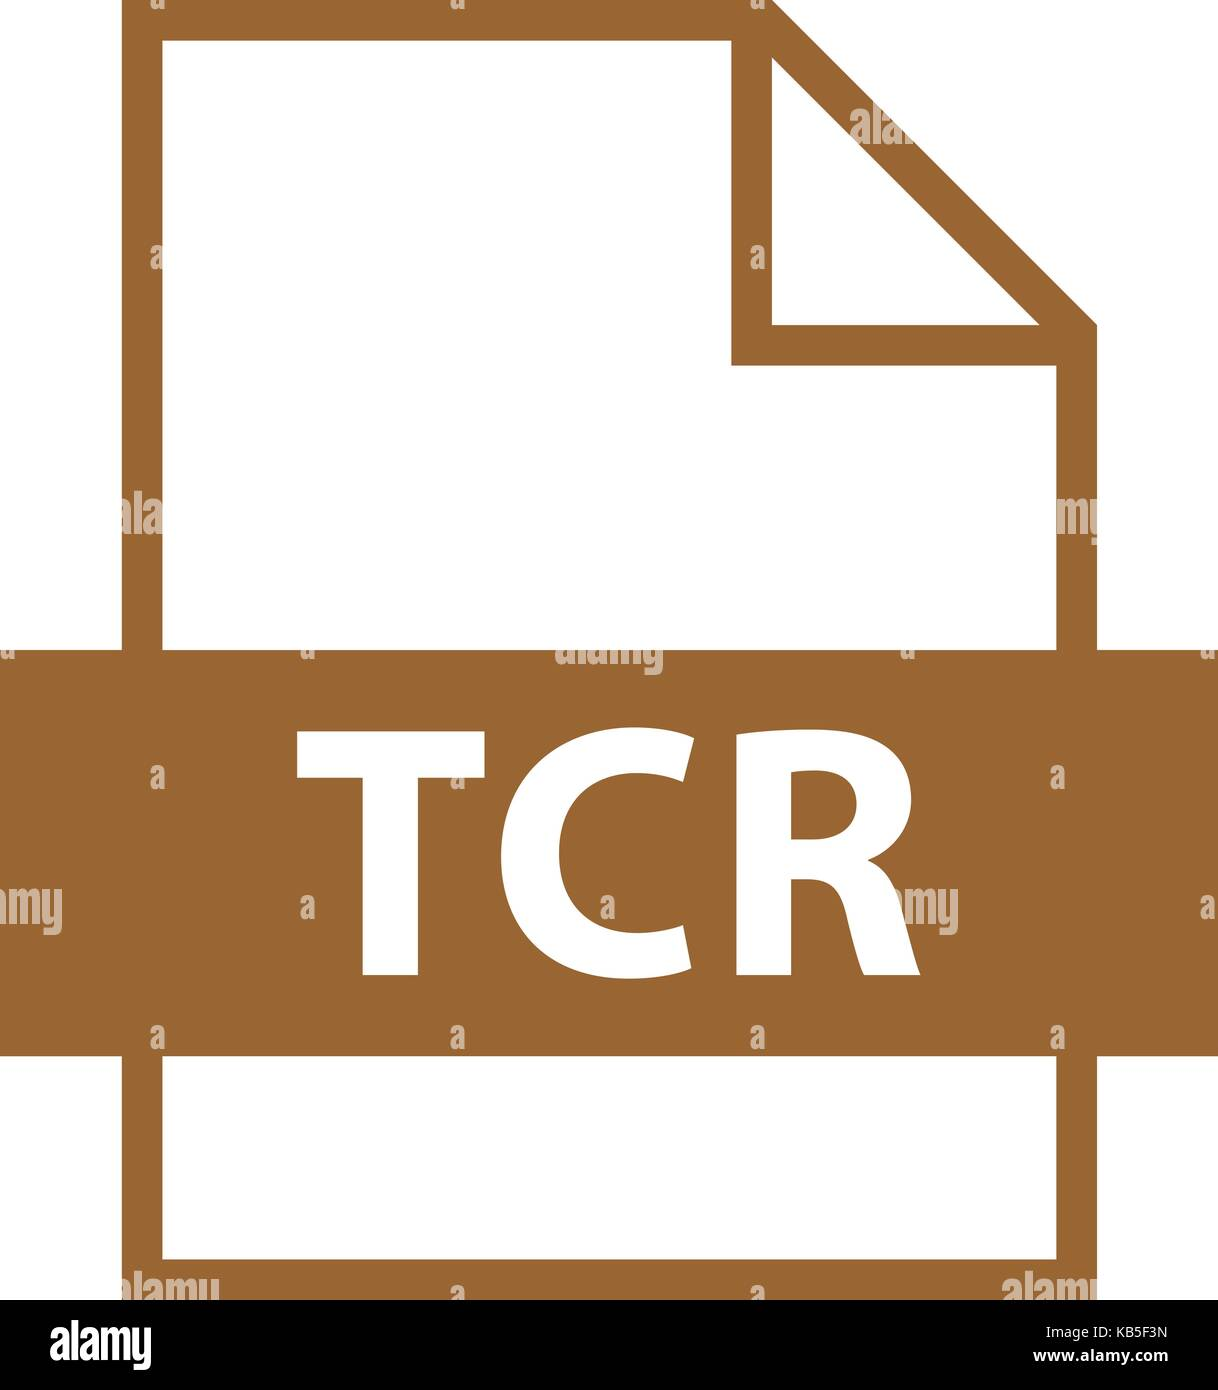 Use it in all your designs. Filename extension icon TCR e-book file format in flat style. Quick and easy recolorable - Stock Image